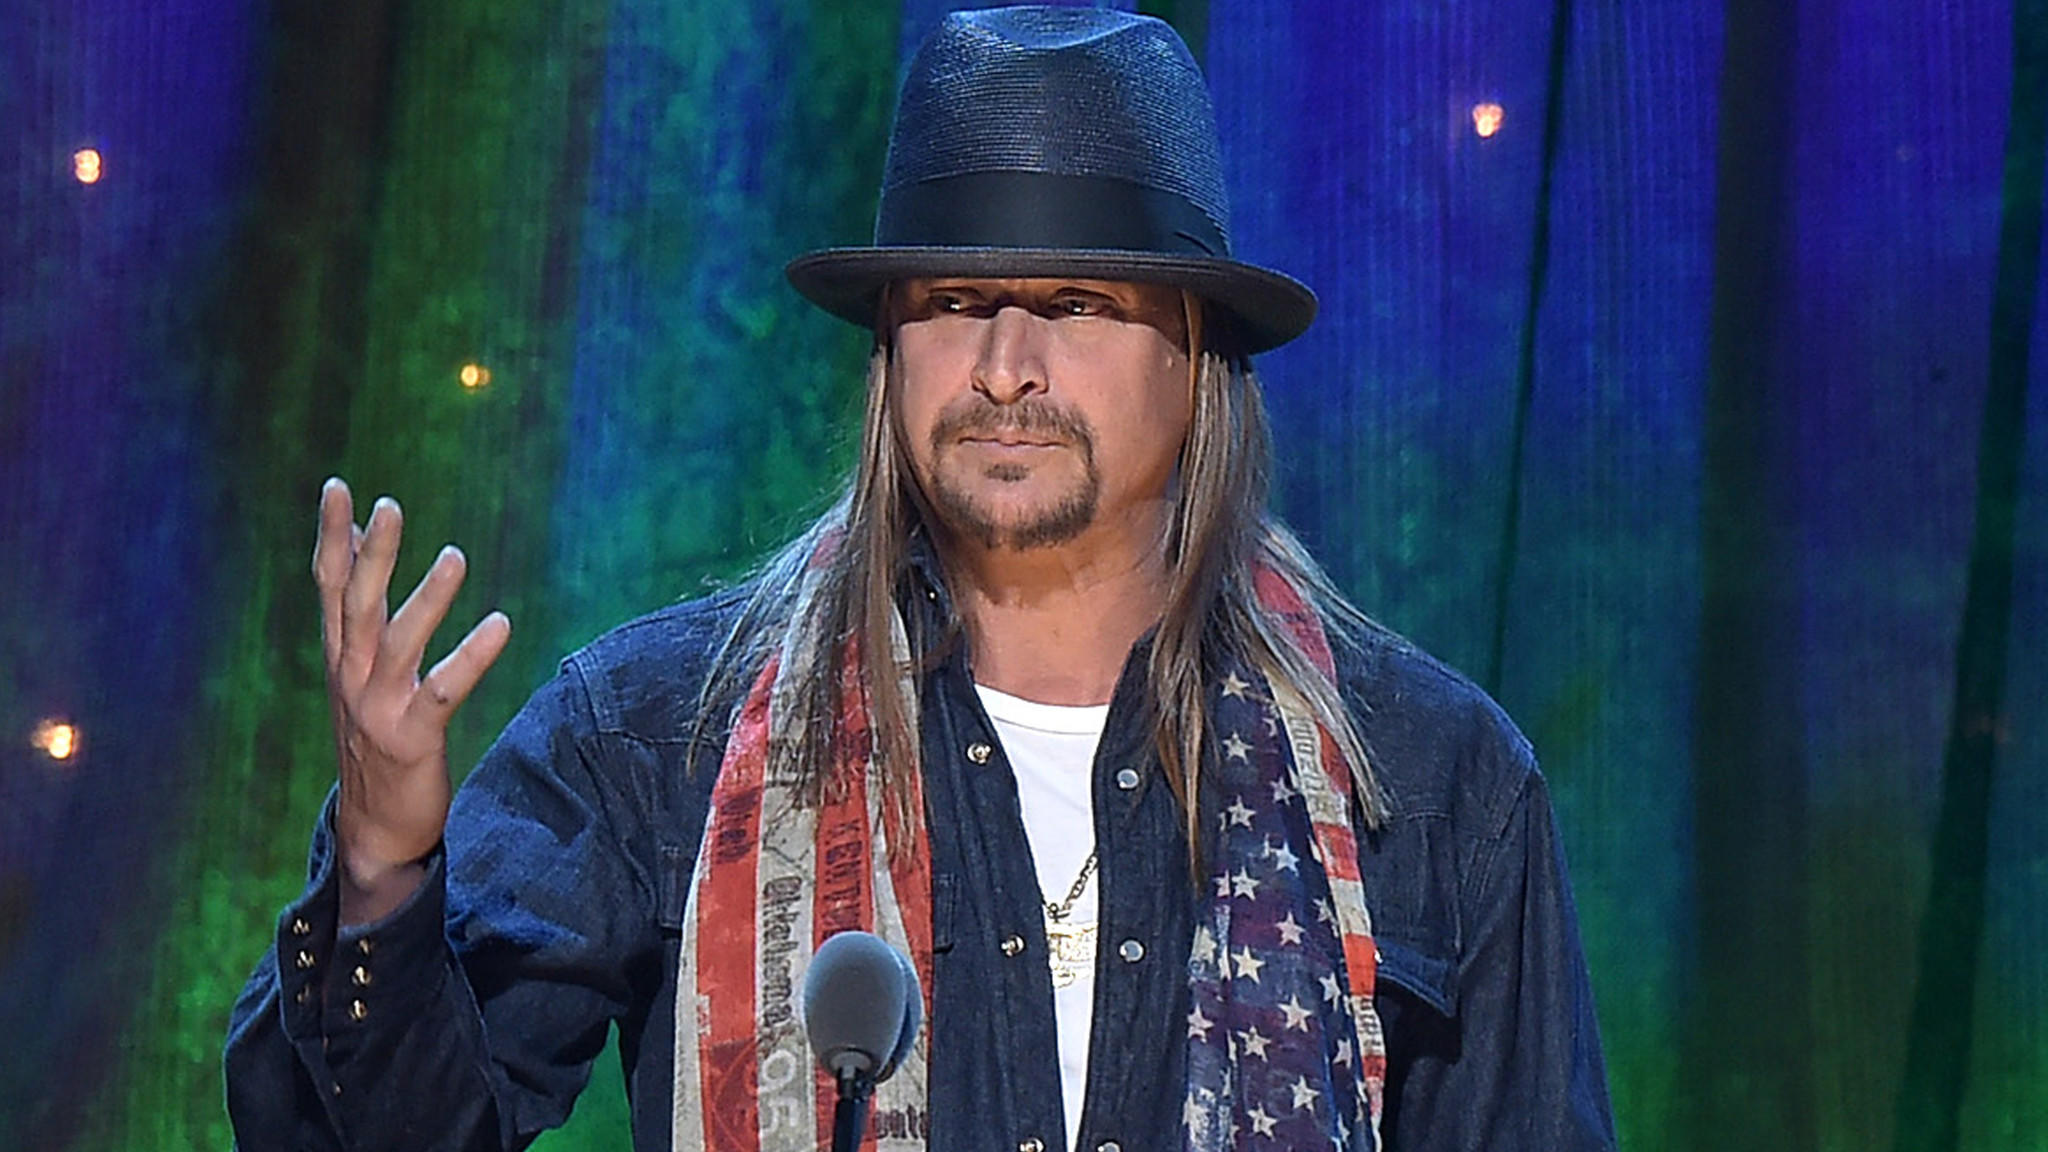 Democrats already taking a Kid Rock Senate run 'seriously'